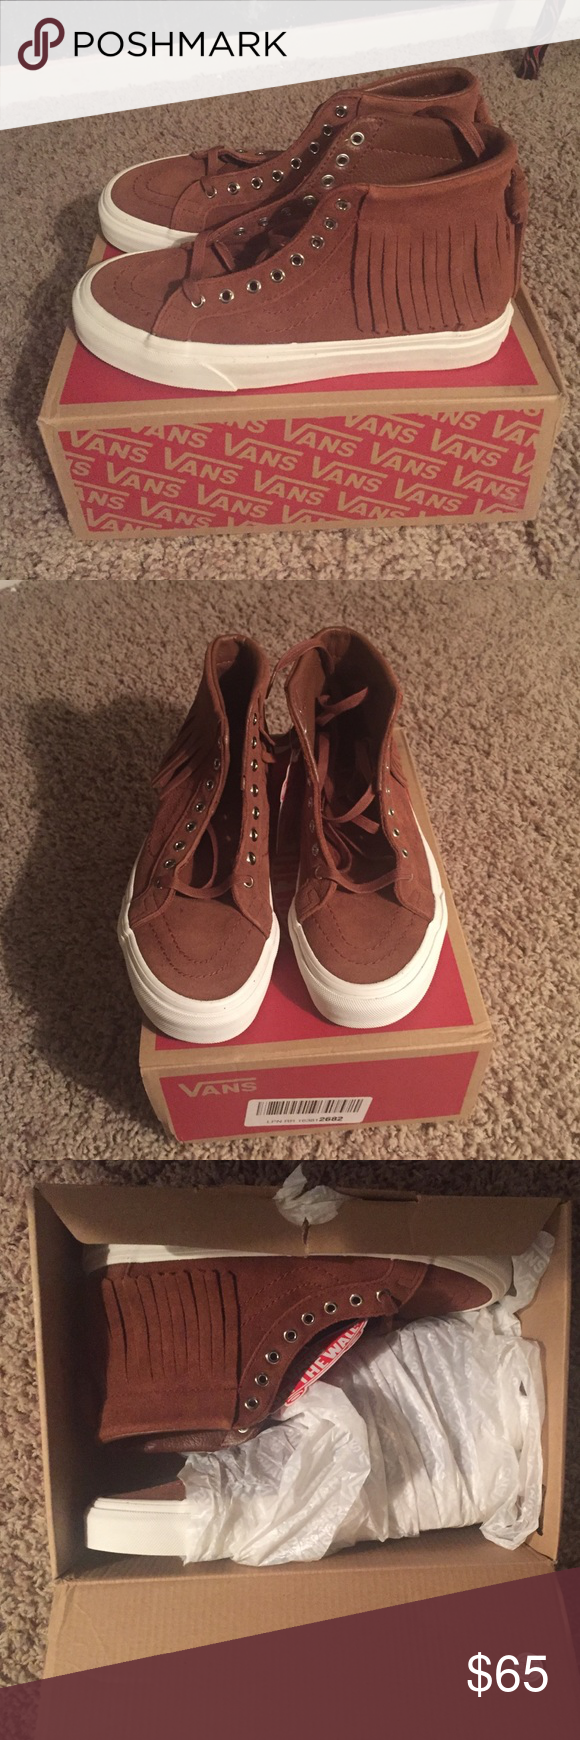 658fb2bd10e7 Vans suade sk8-hi moc Brand new! Still in the box. Tags included. Vans Shoes  Sneakers